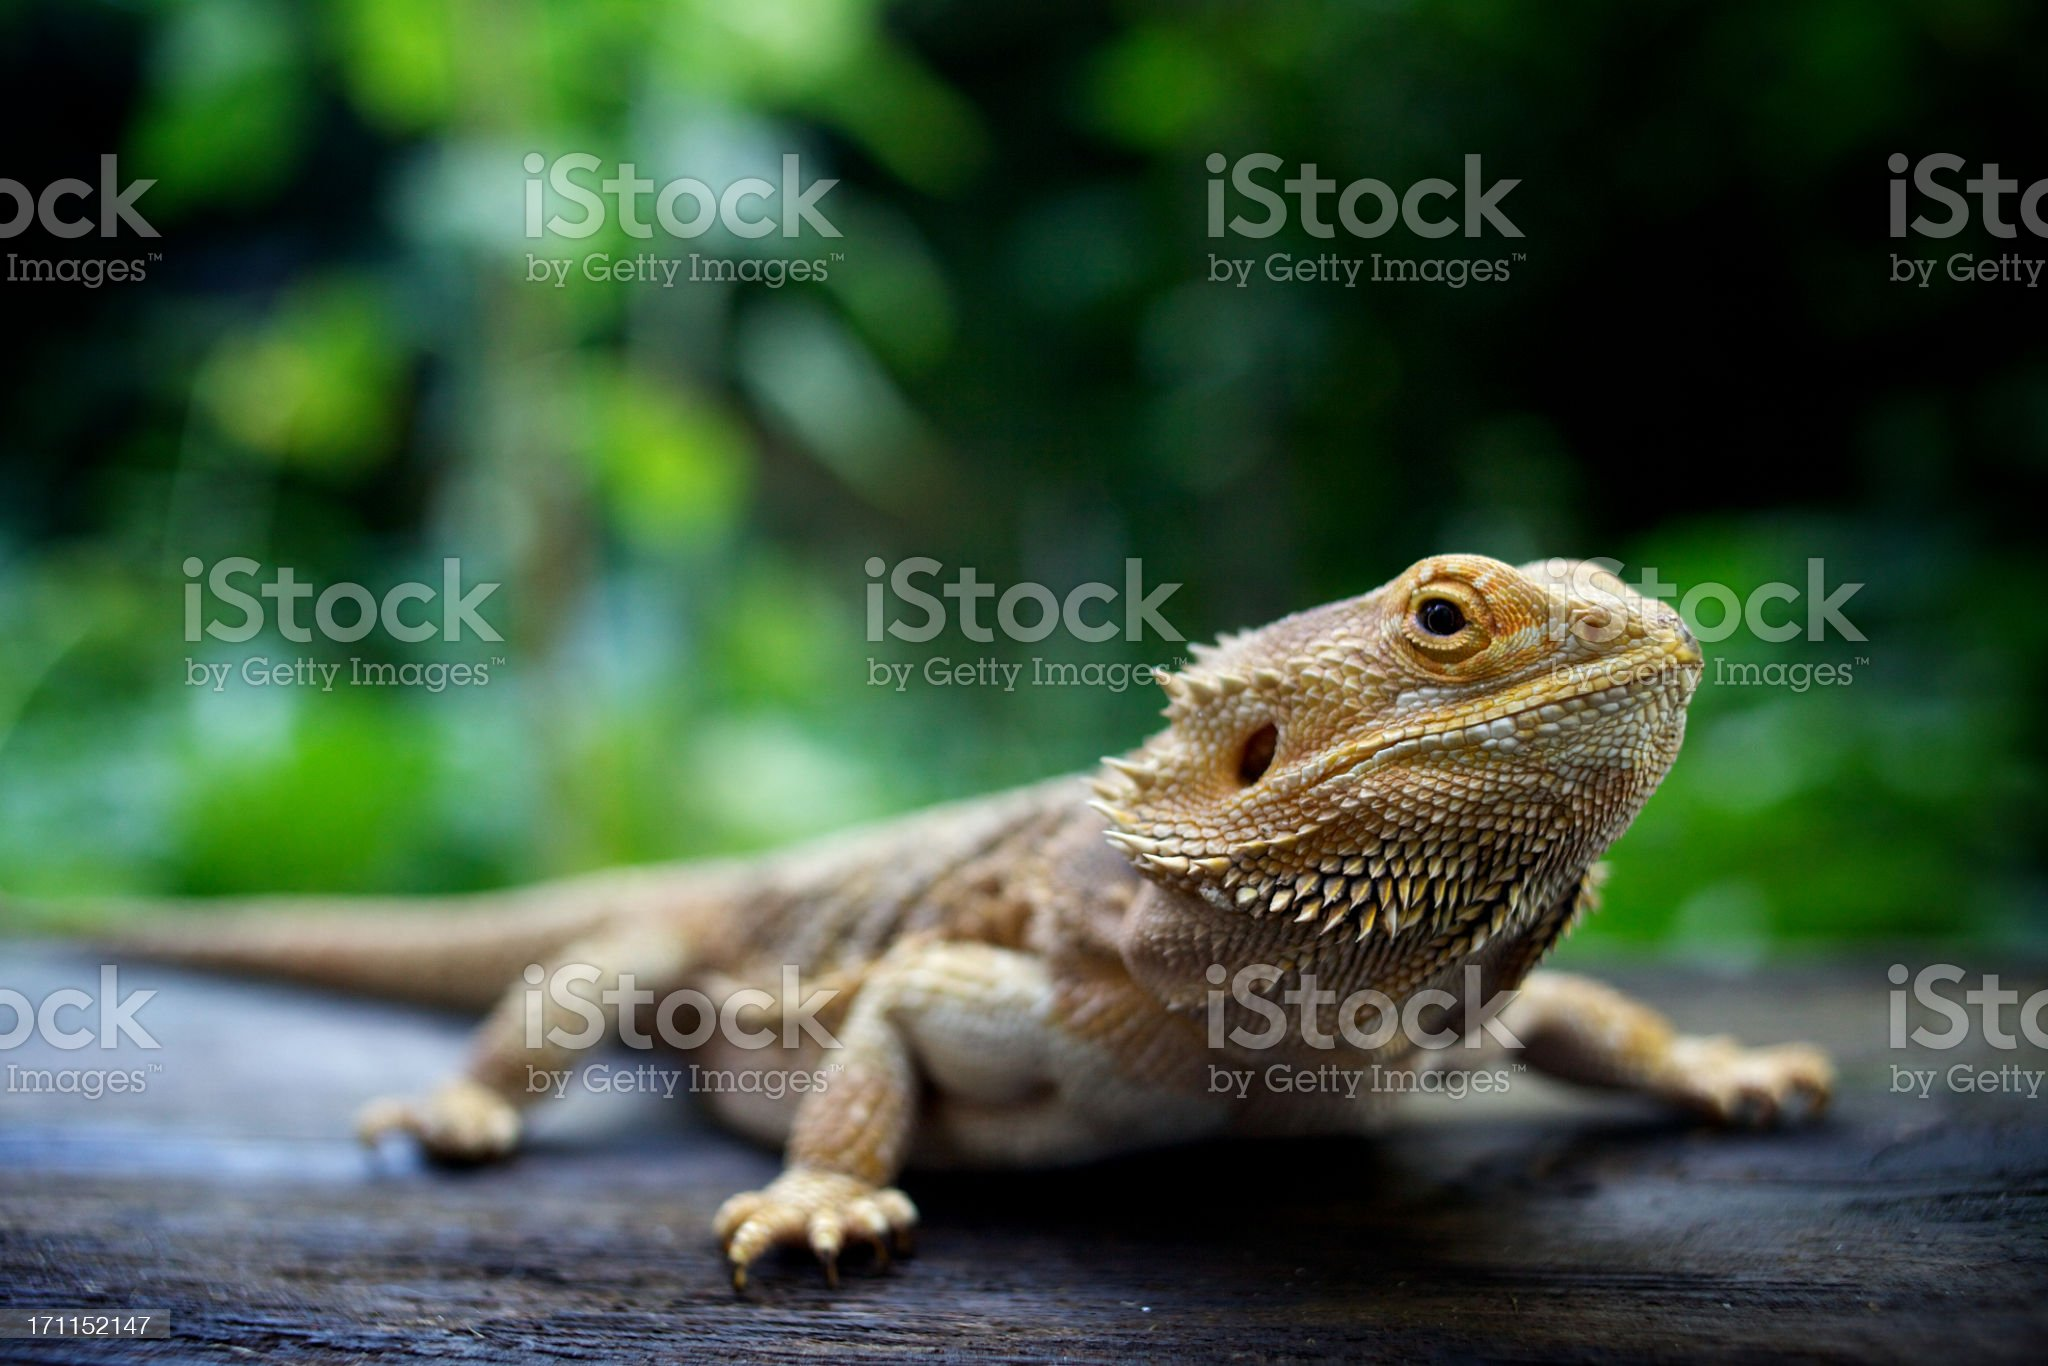 A pogona lizard sitting on a wooden surface in a forest royalty-free stock photo